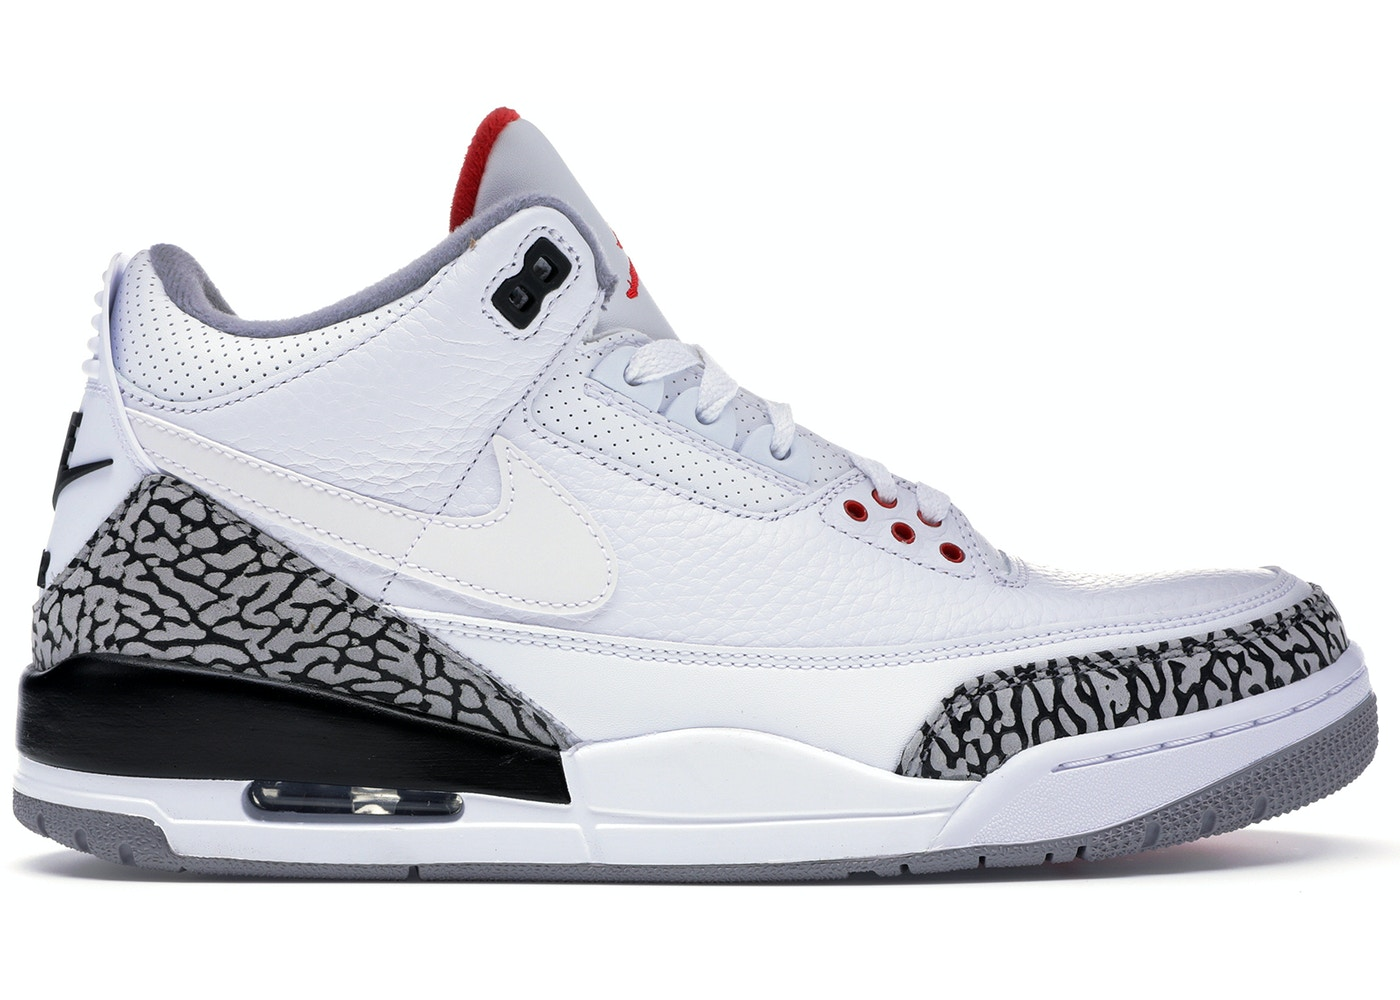 14c39ed4815d9c Air Jordan 3 JTH Super Bowl - AV6683-160